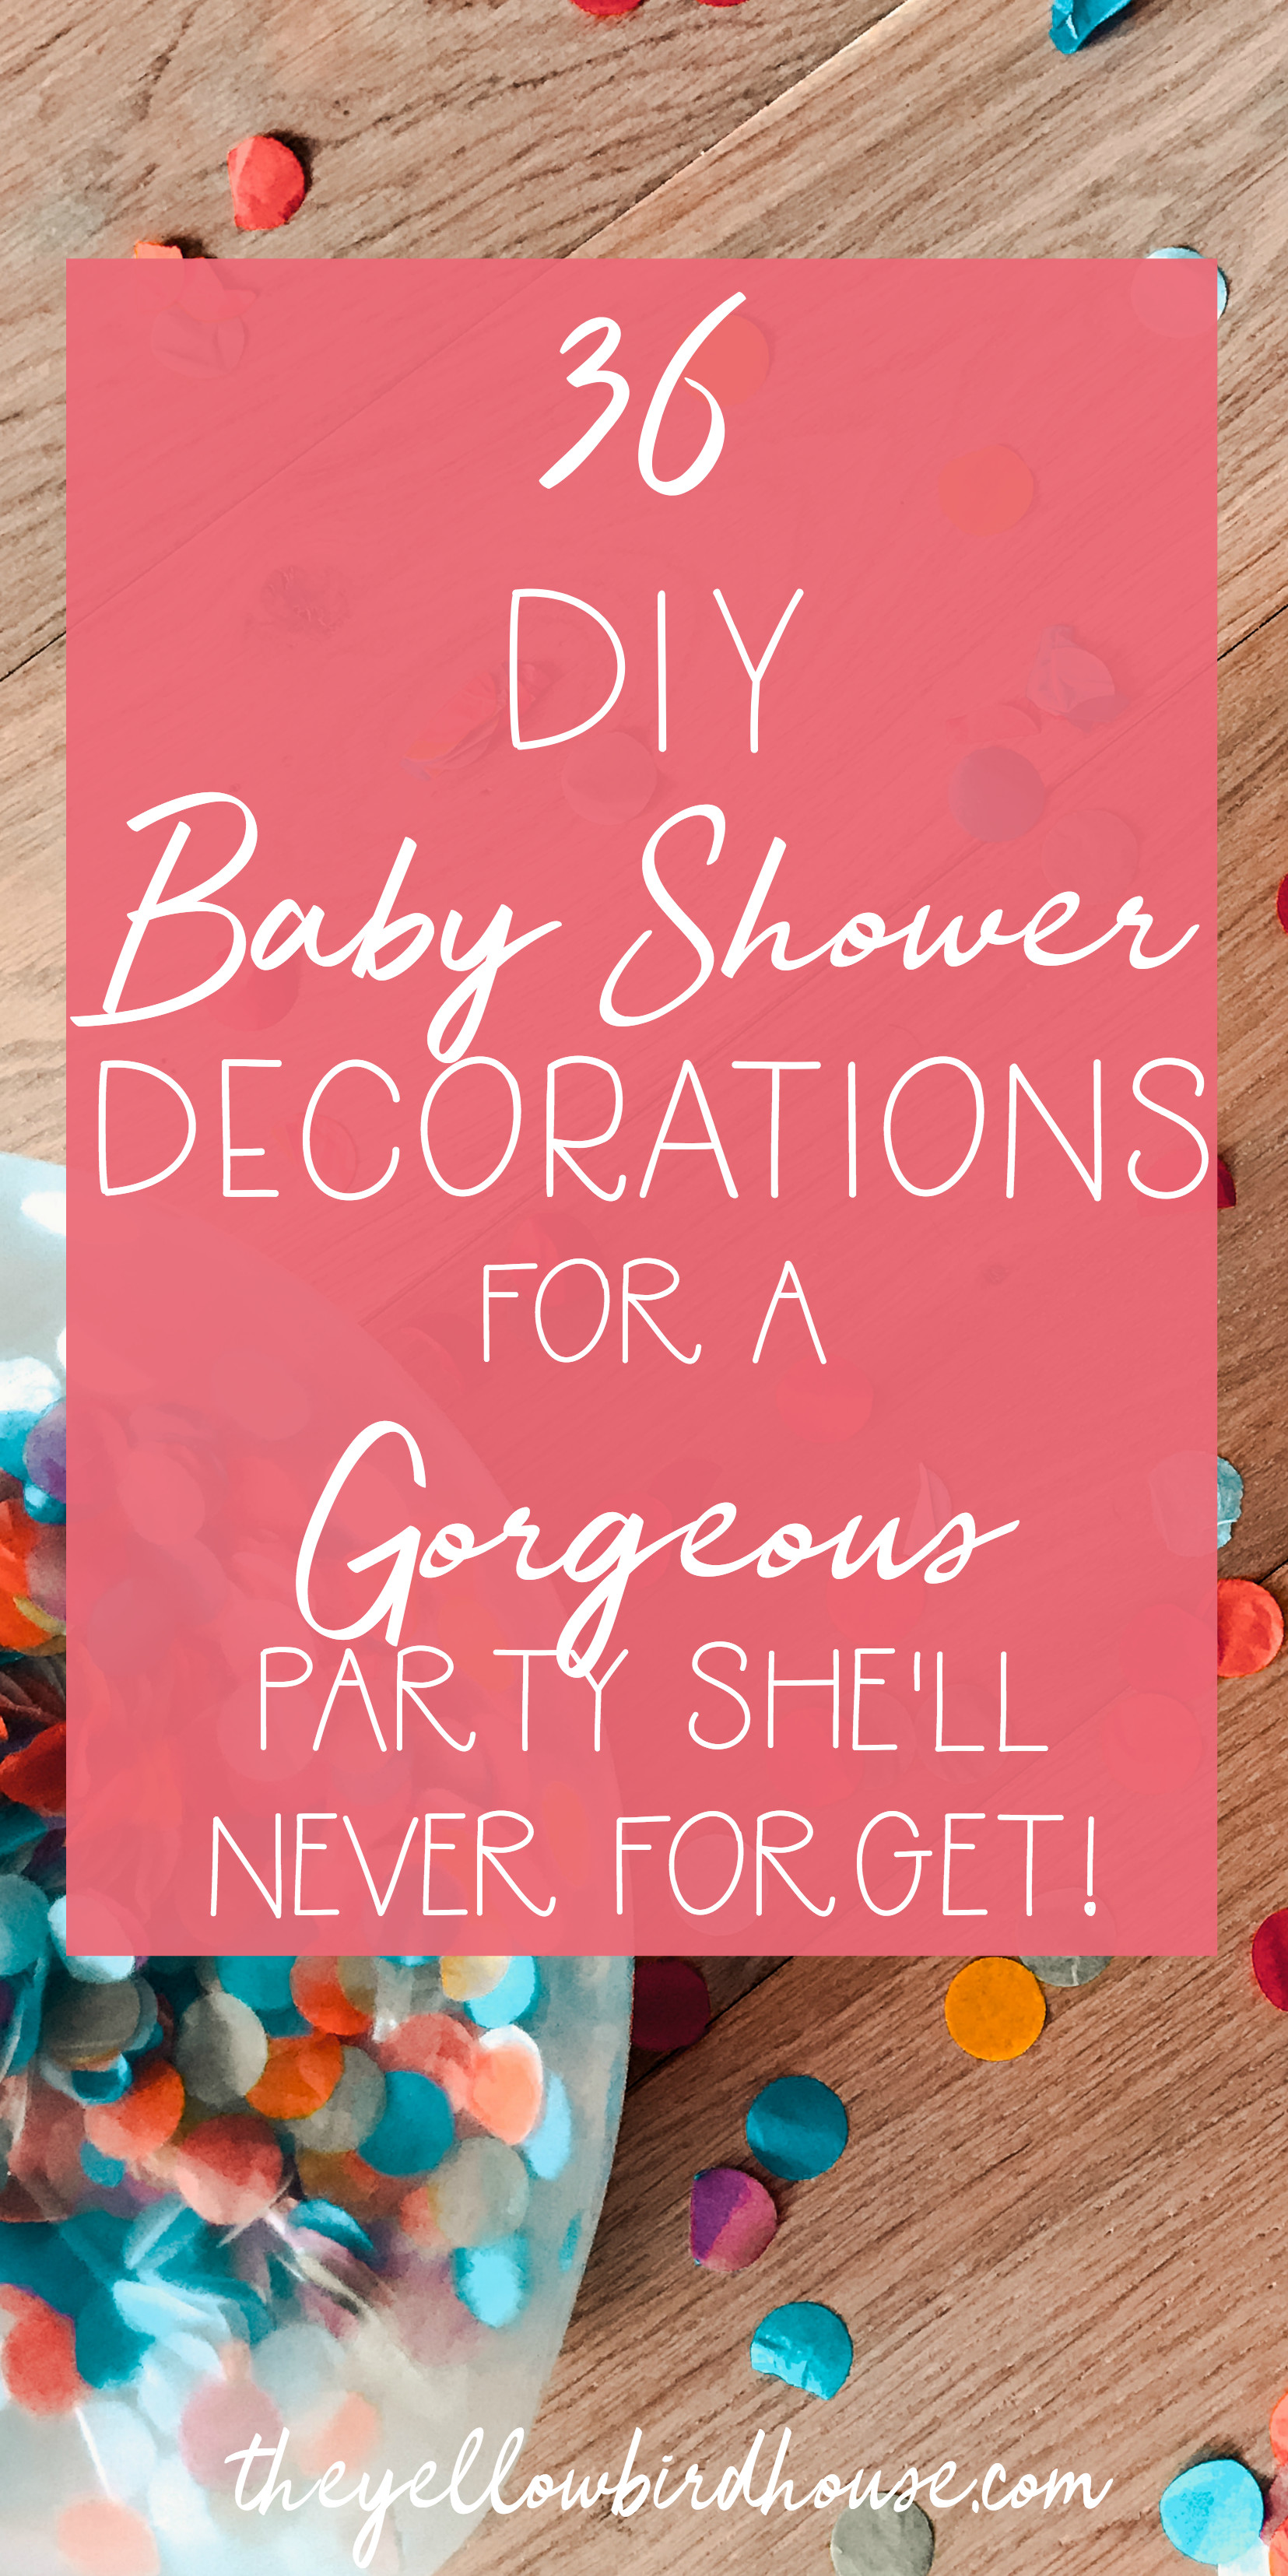 Baby Shower DIY Ideas  36 DIY Baby Shower Decorations for a Gorgeous Party